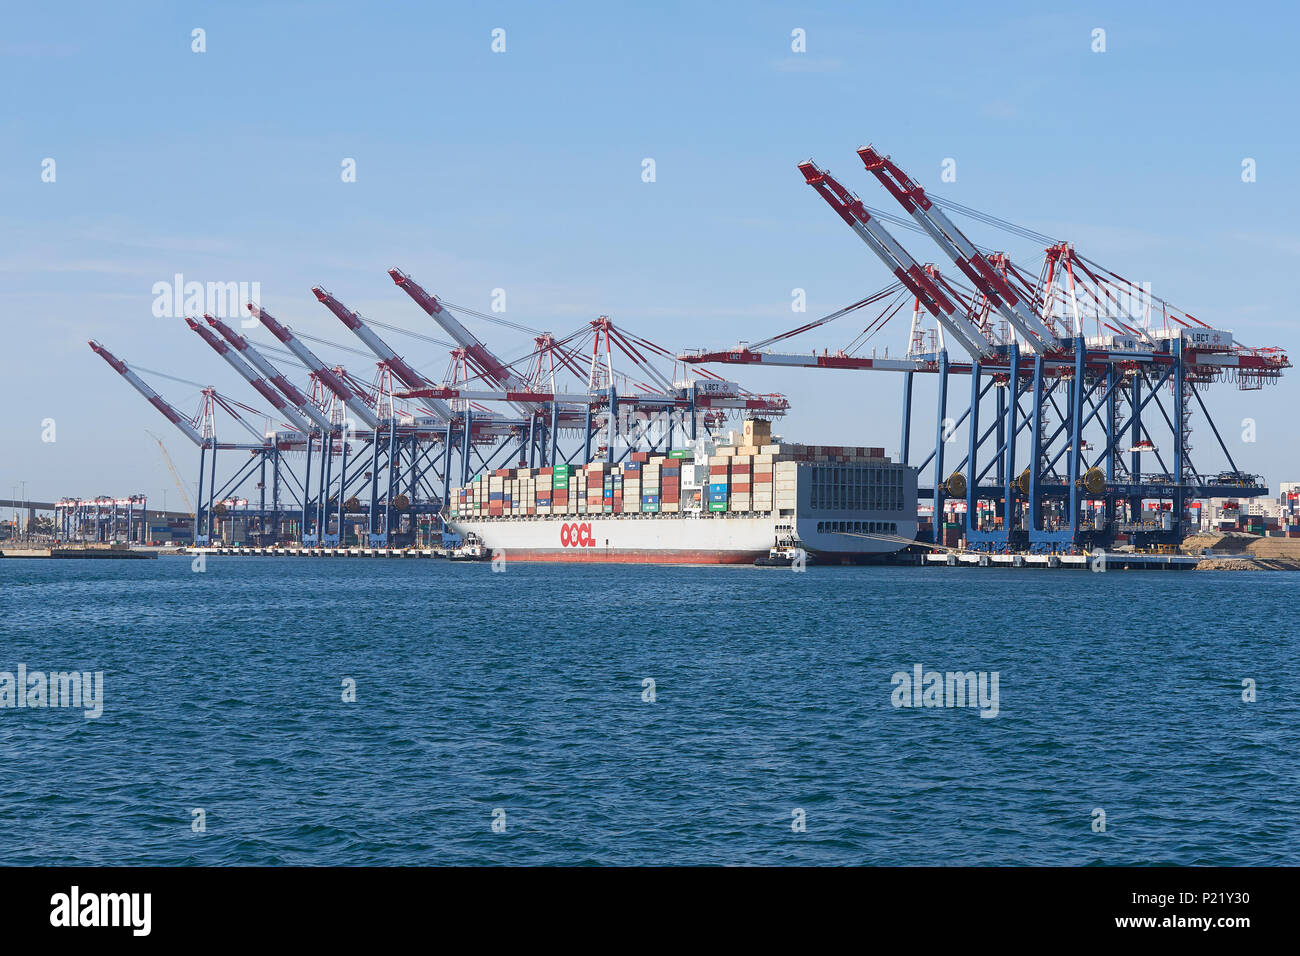 The Container Ship, OOCL LONDON, About To Depart The Long Beach Container Terminal, Port Of Long Beach, California, USA. - Stock Image